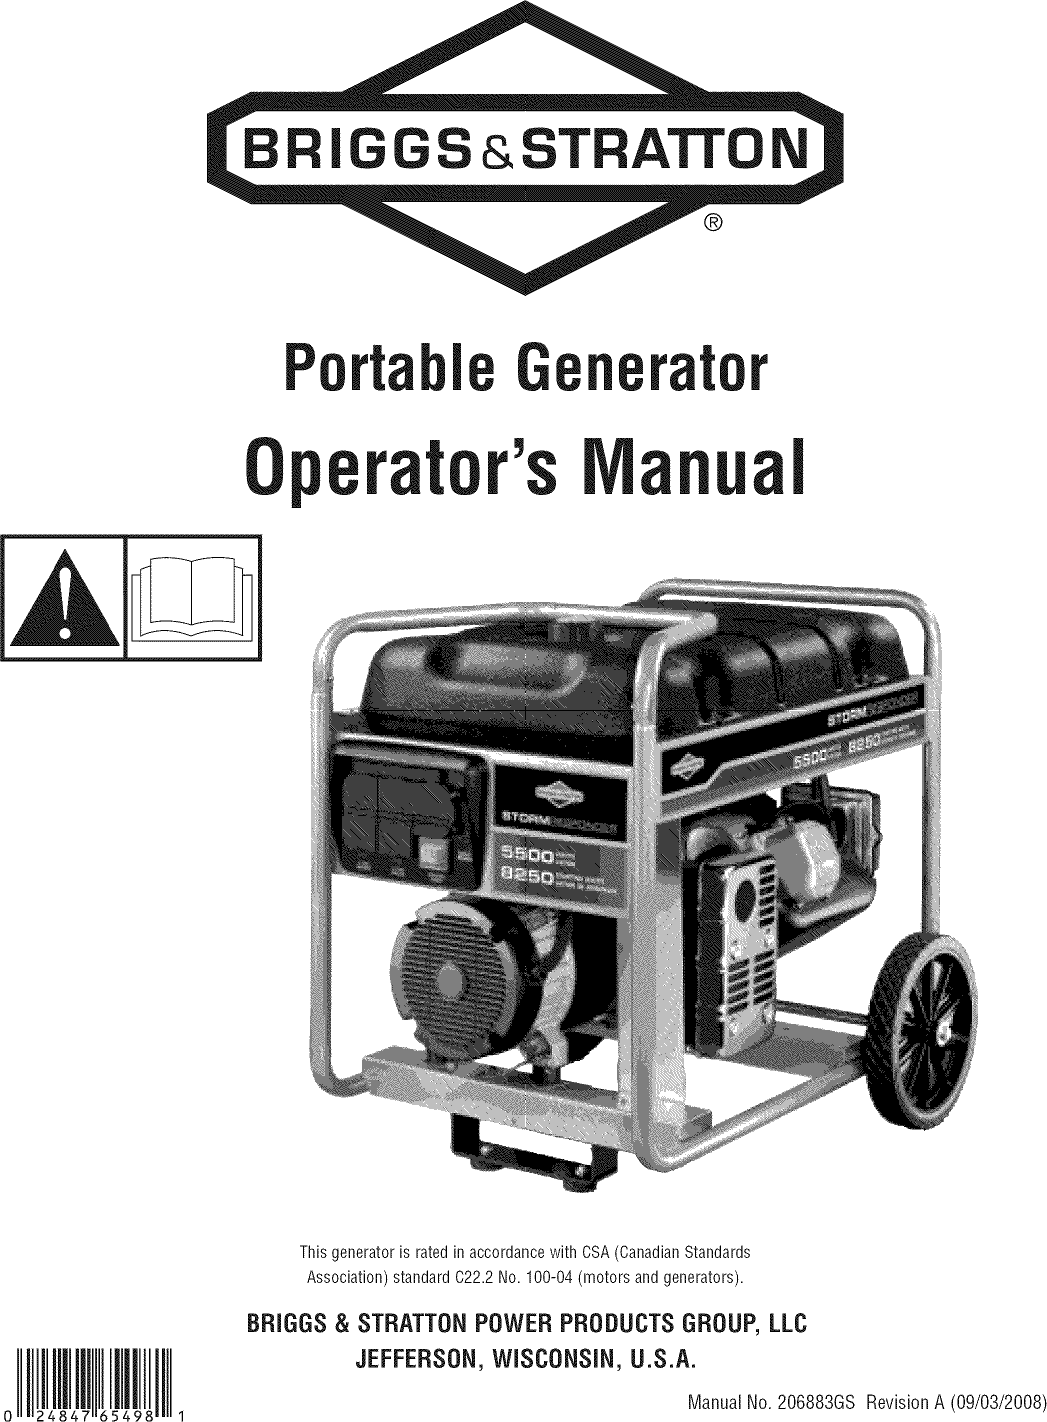 Briggs & Stratton 030430 generator manual